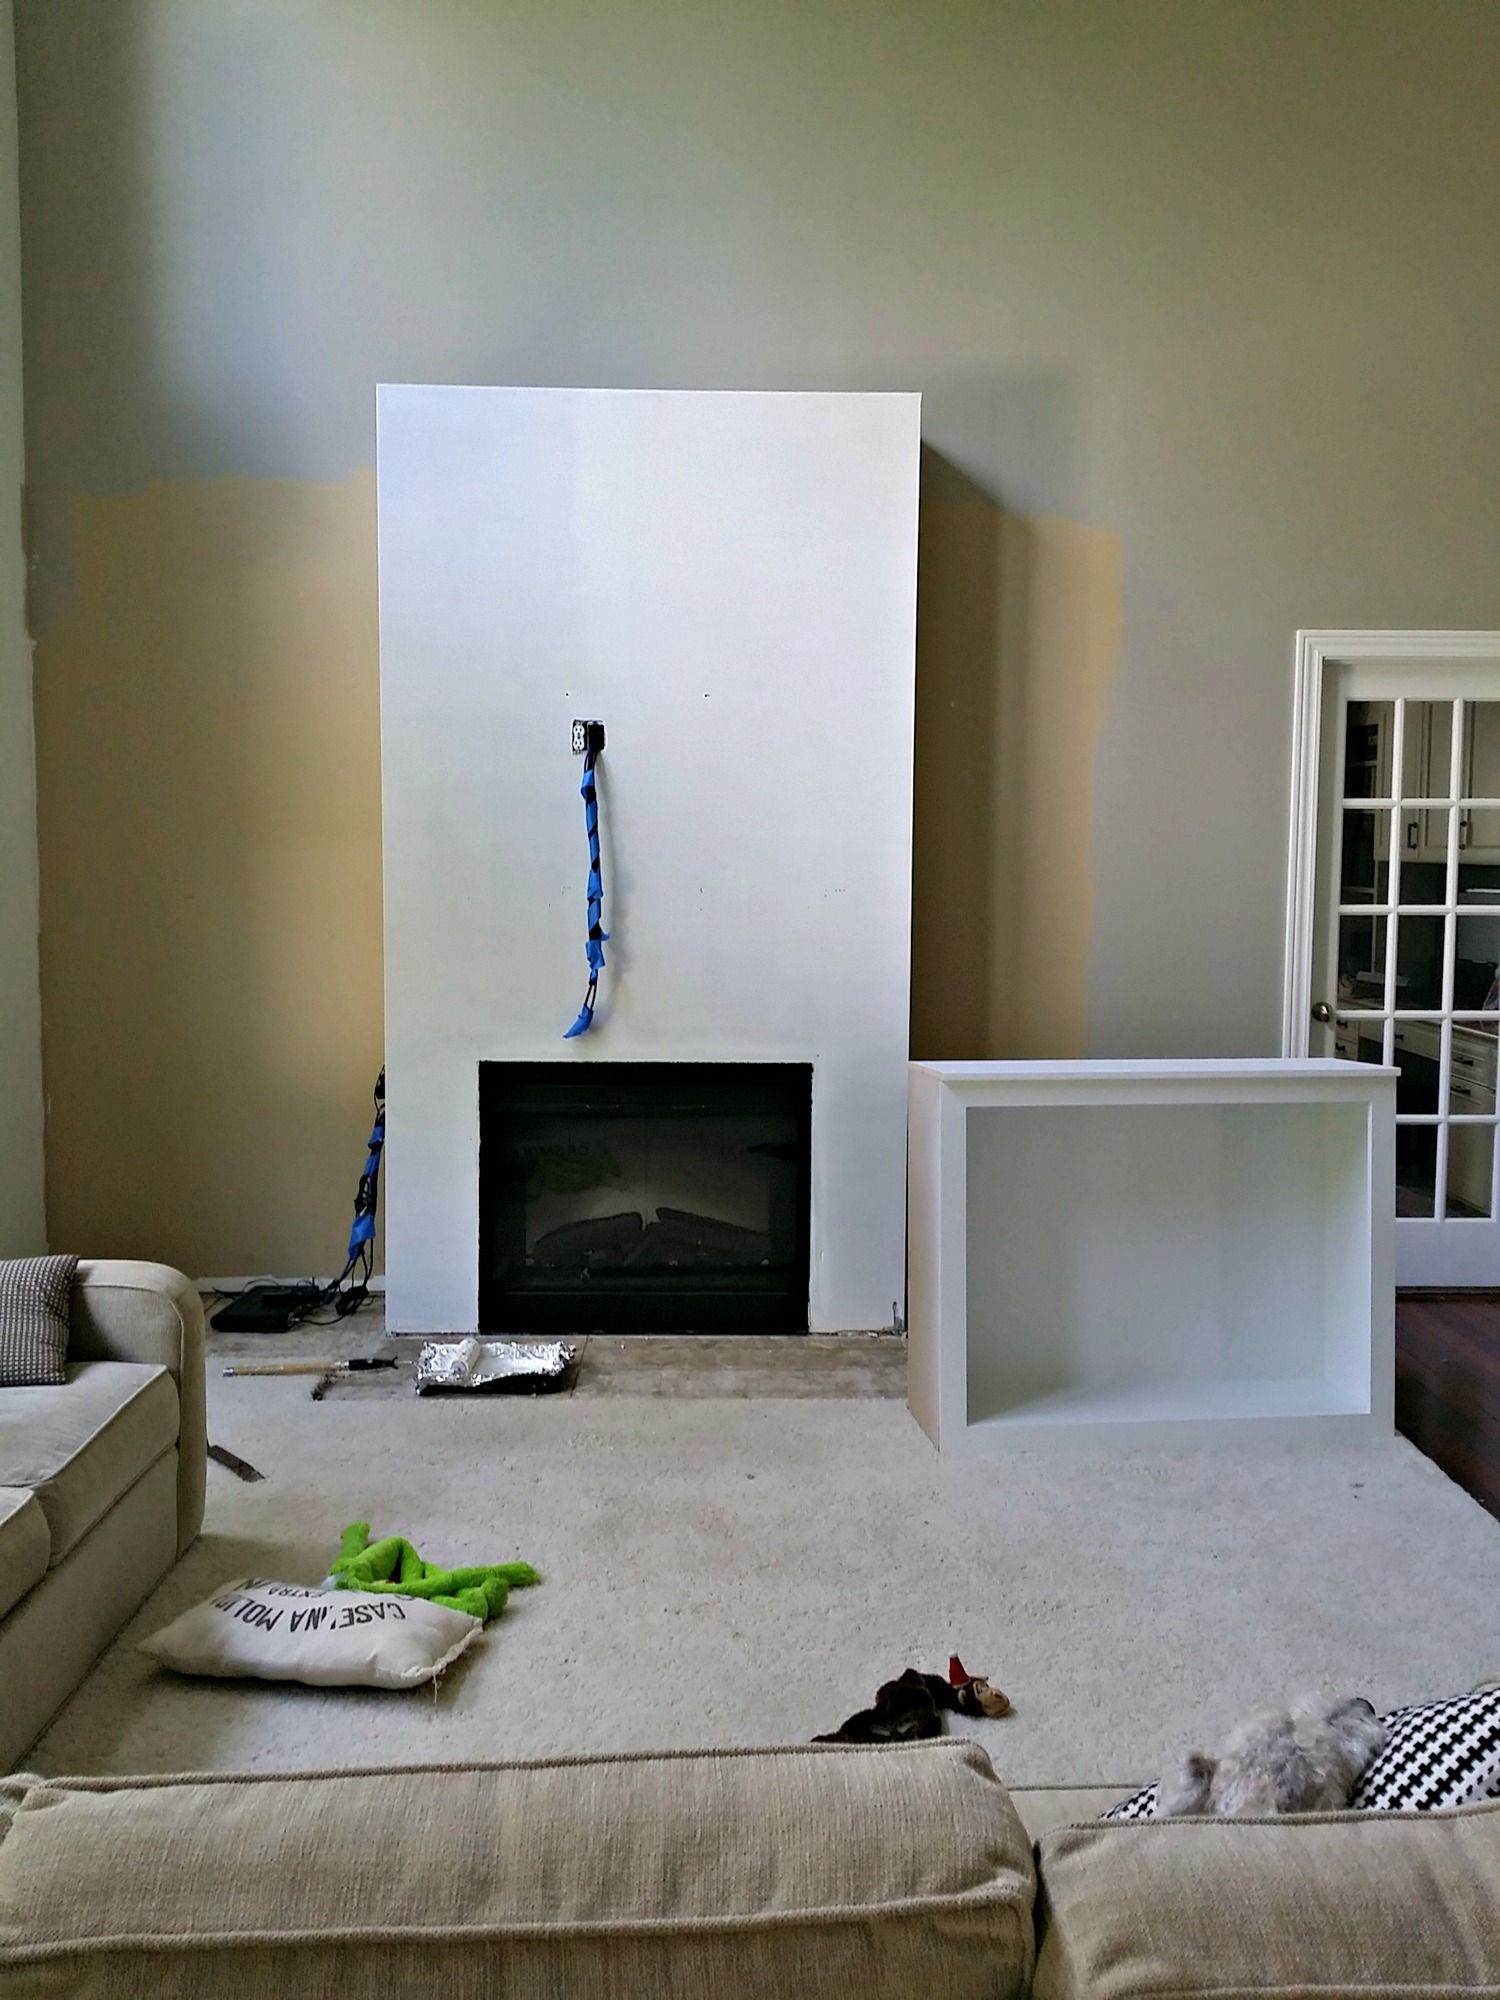 Living Room Built Ins Tutorial Cost Decor And The Dog Living Room Built Ins Built Ins Living Room Remodel